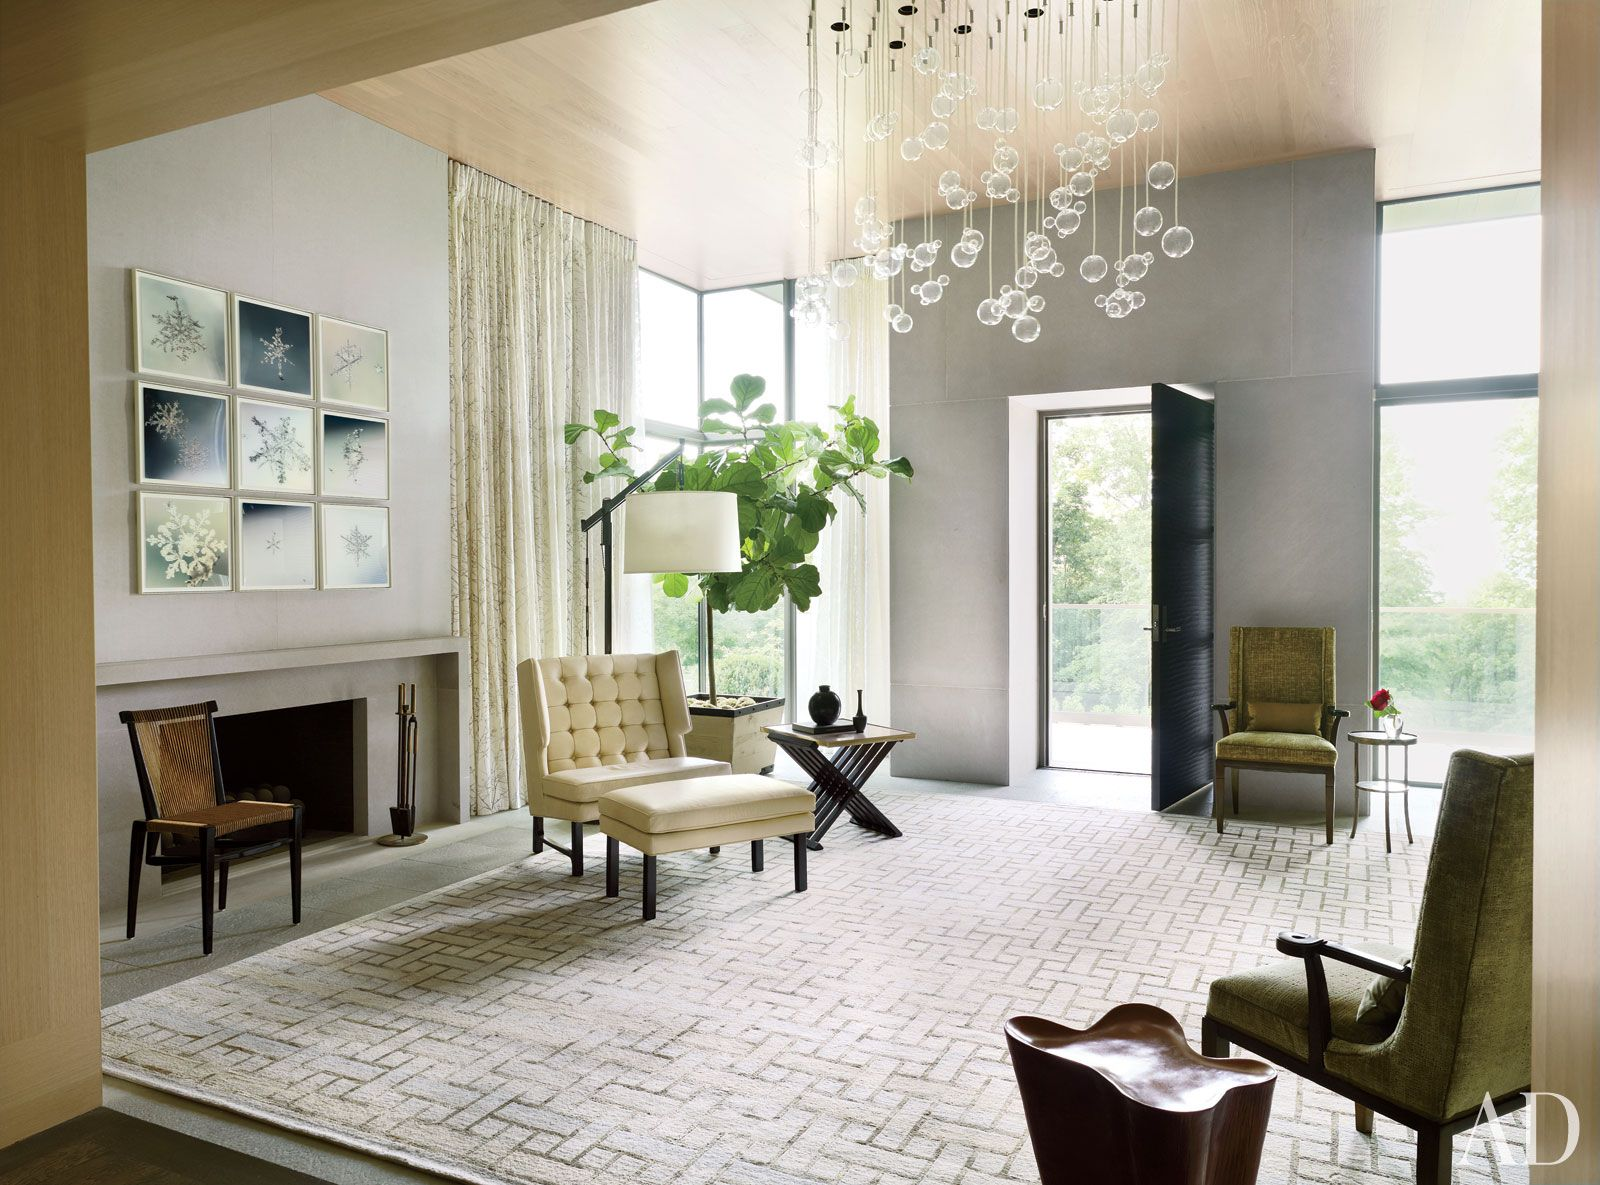 McAlpine Booth & Ferrier Interiors Frist Residence - McAlpine Booth & Ferrier Interiors